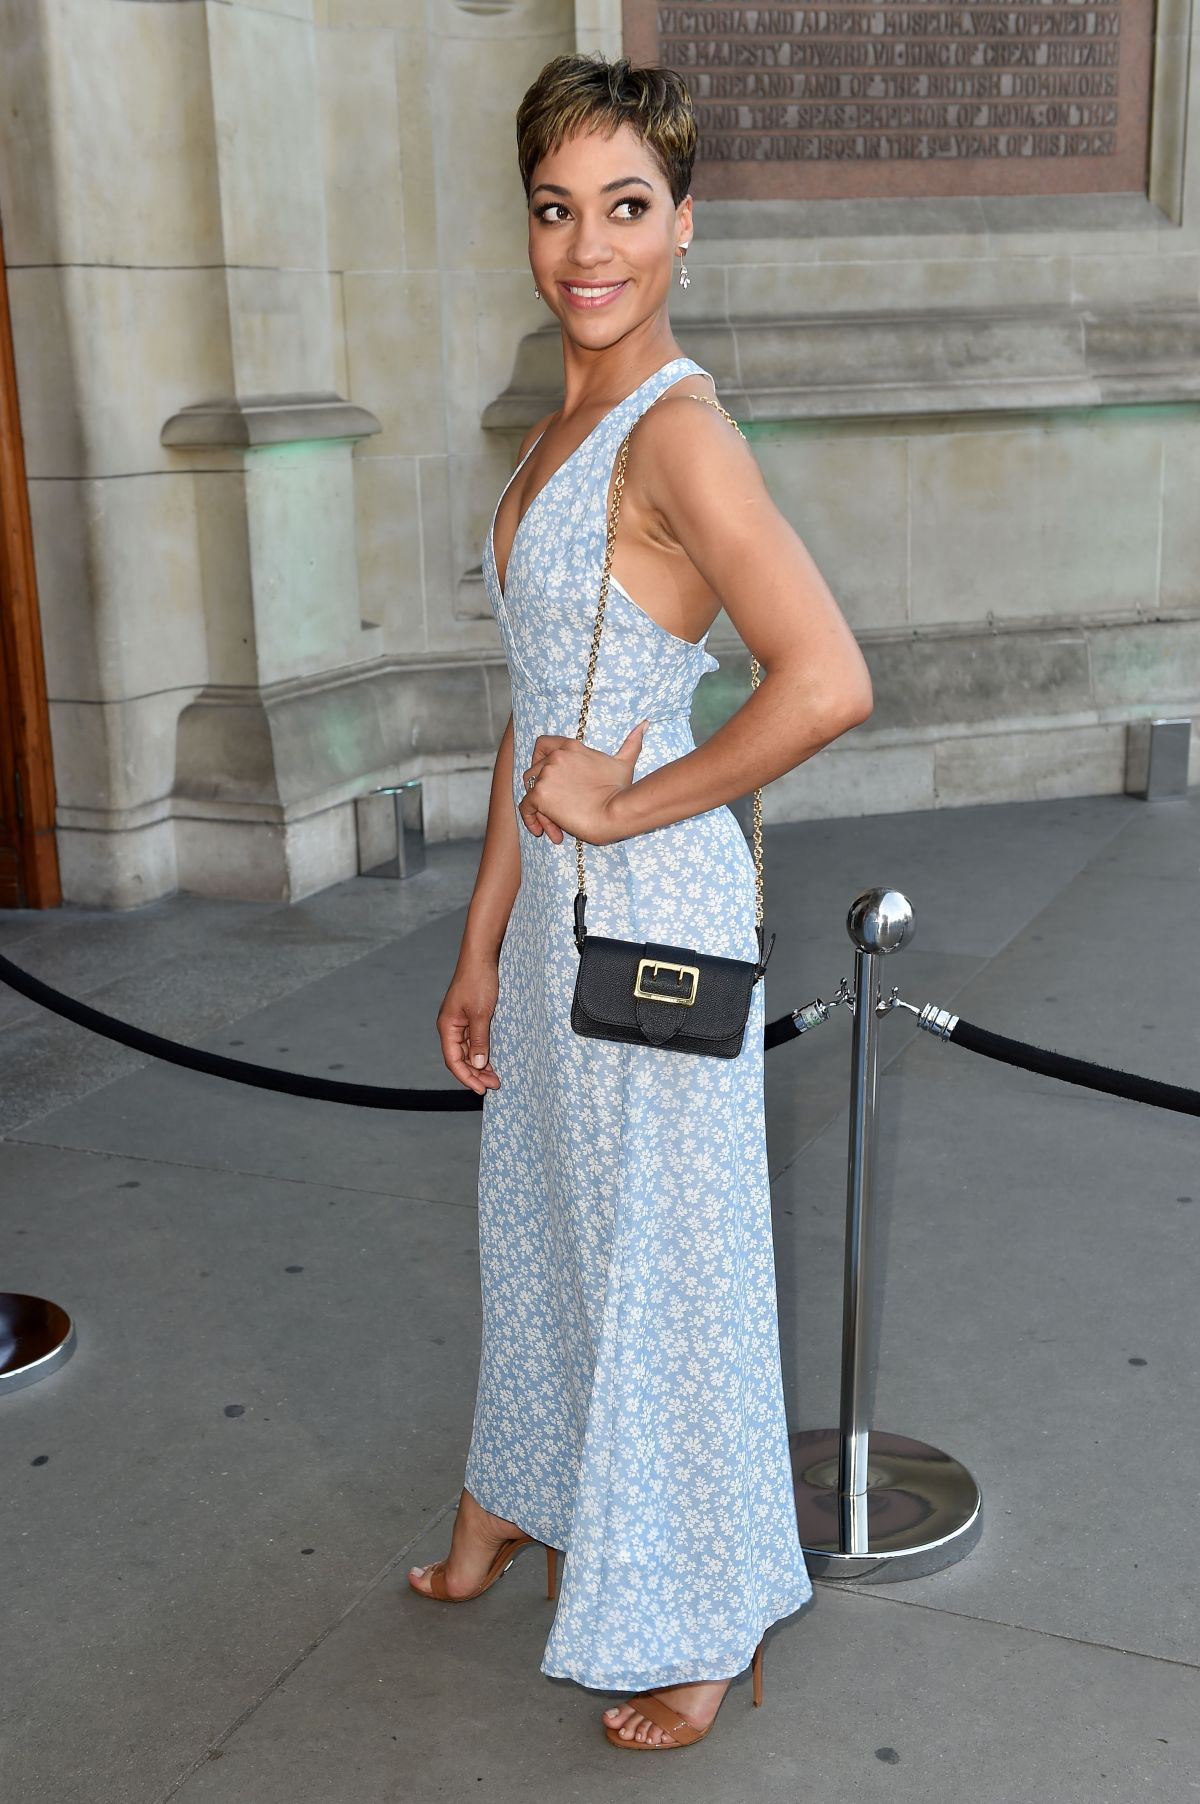 CUSH JUMBO at V&A Summer Party in London 06/21/2017